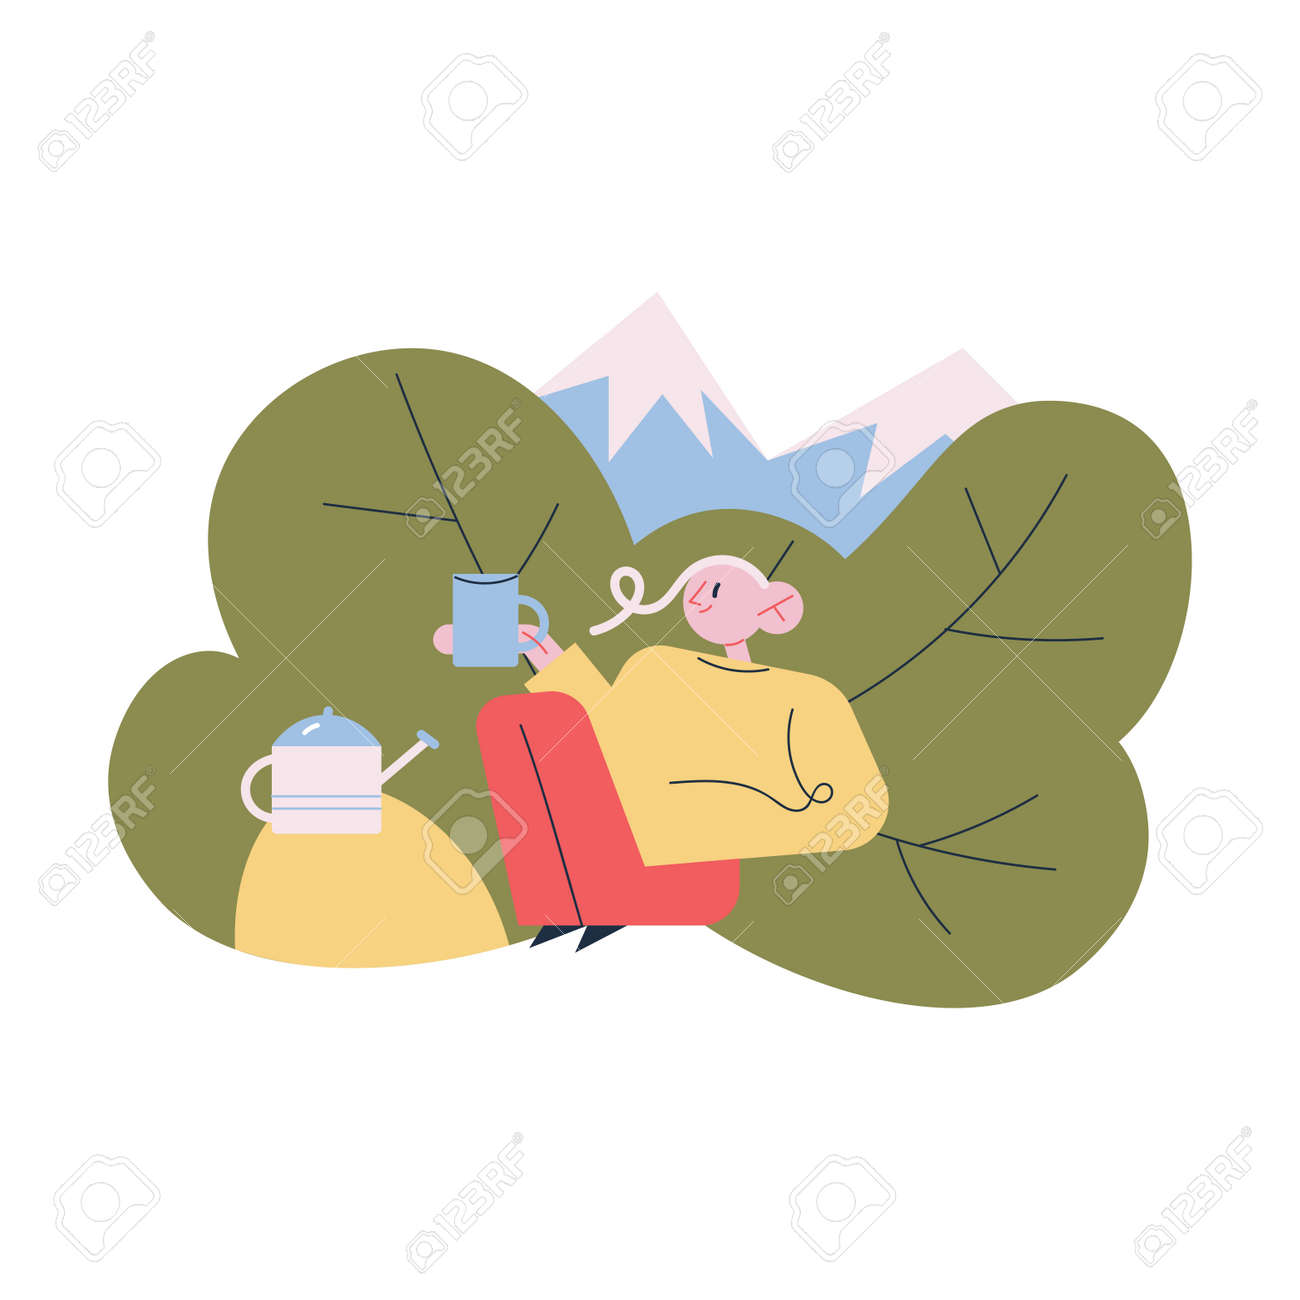 Tourist sitting relaxing enjoying cup of hot tea or coffee during traveling in mountains - 164904039